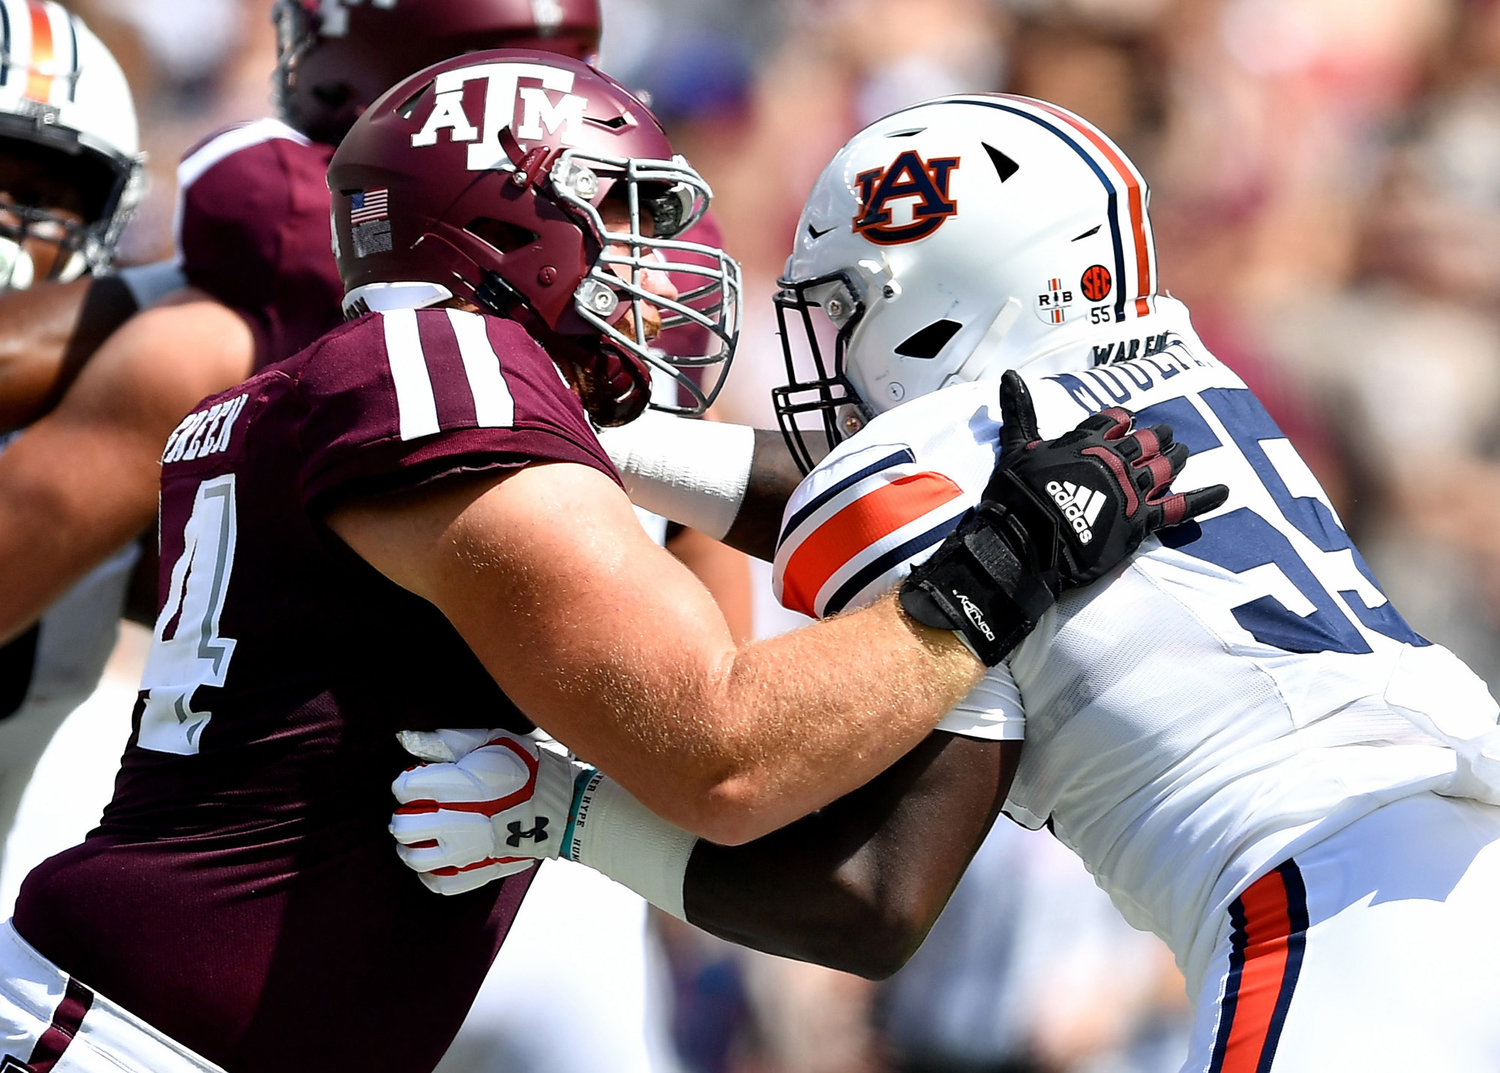 Auburn Tigers defensive end T.D. Moultry (55) in action during the first half of an NCAA football game against the Texas A&M Aggies Saturday, Sept. 21, 2019, at Kyle Field in College Station Texas. Auburn wins 28-20.